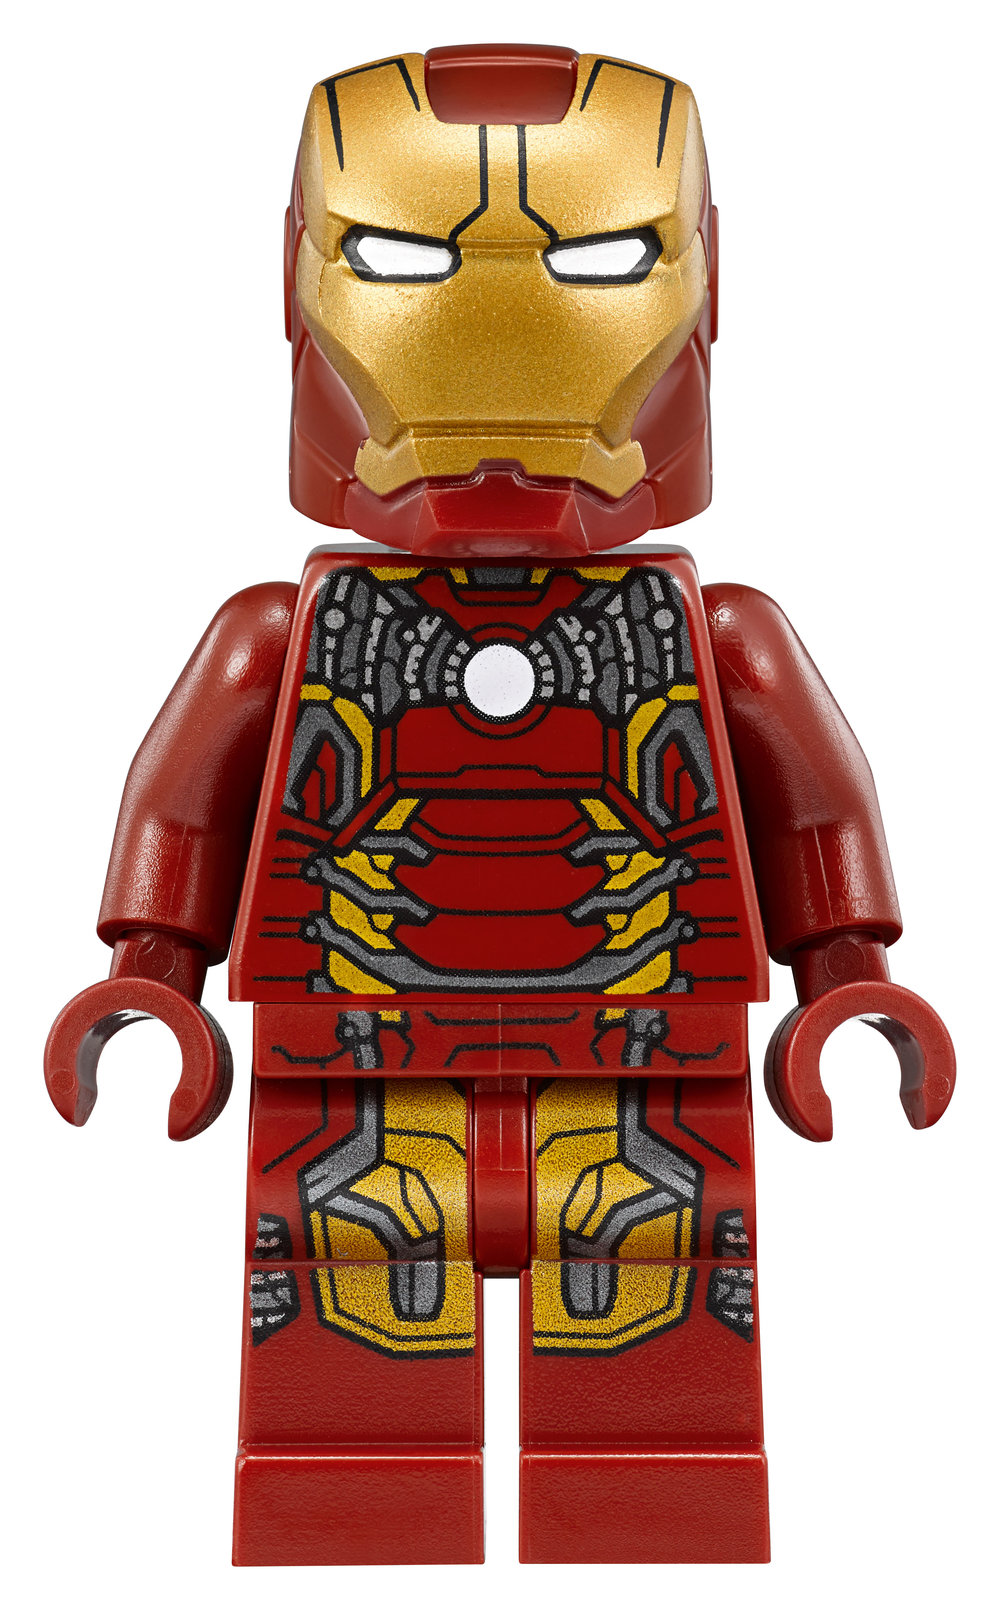 76105_1to1_MF_D2C_Iron_Man.jpg